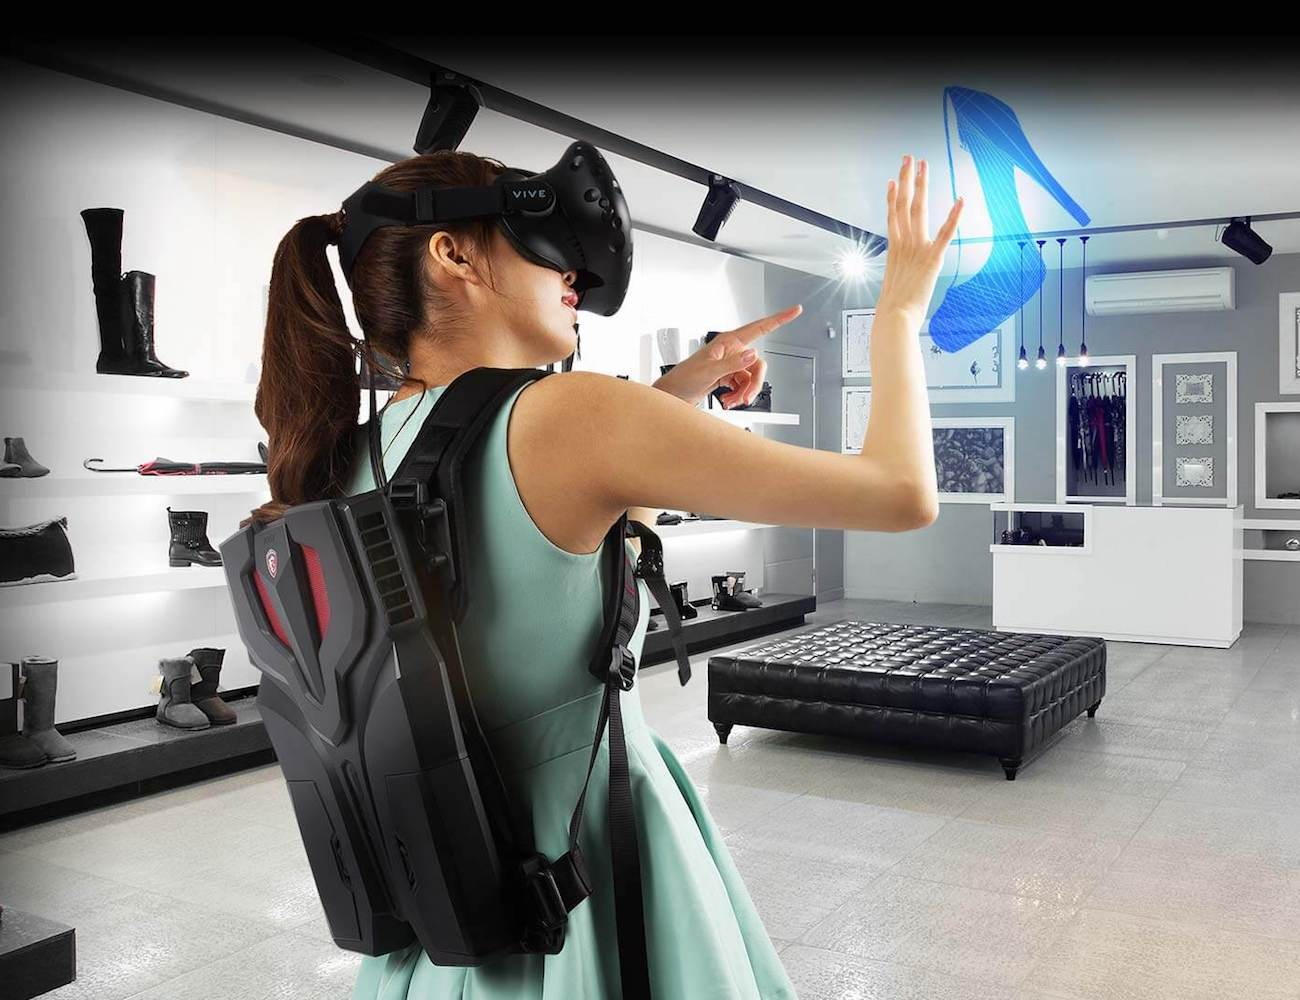 VR One Backpack PC by MSI